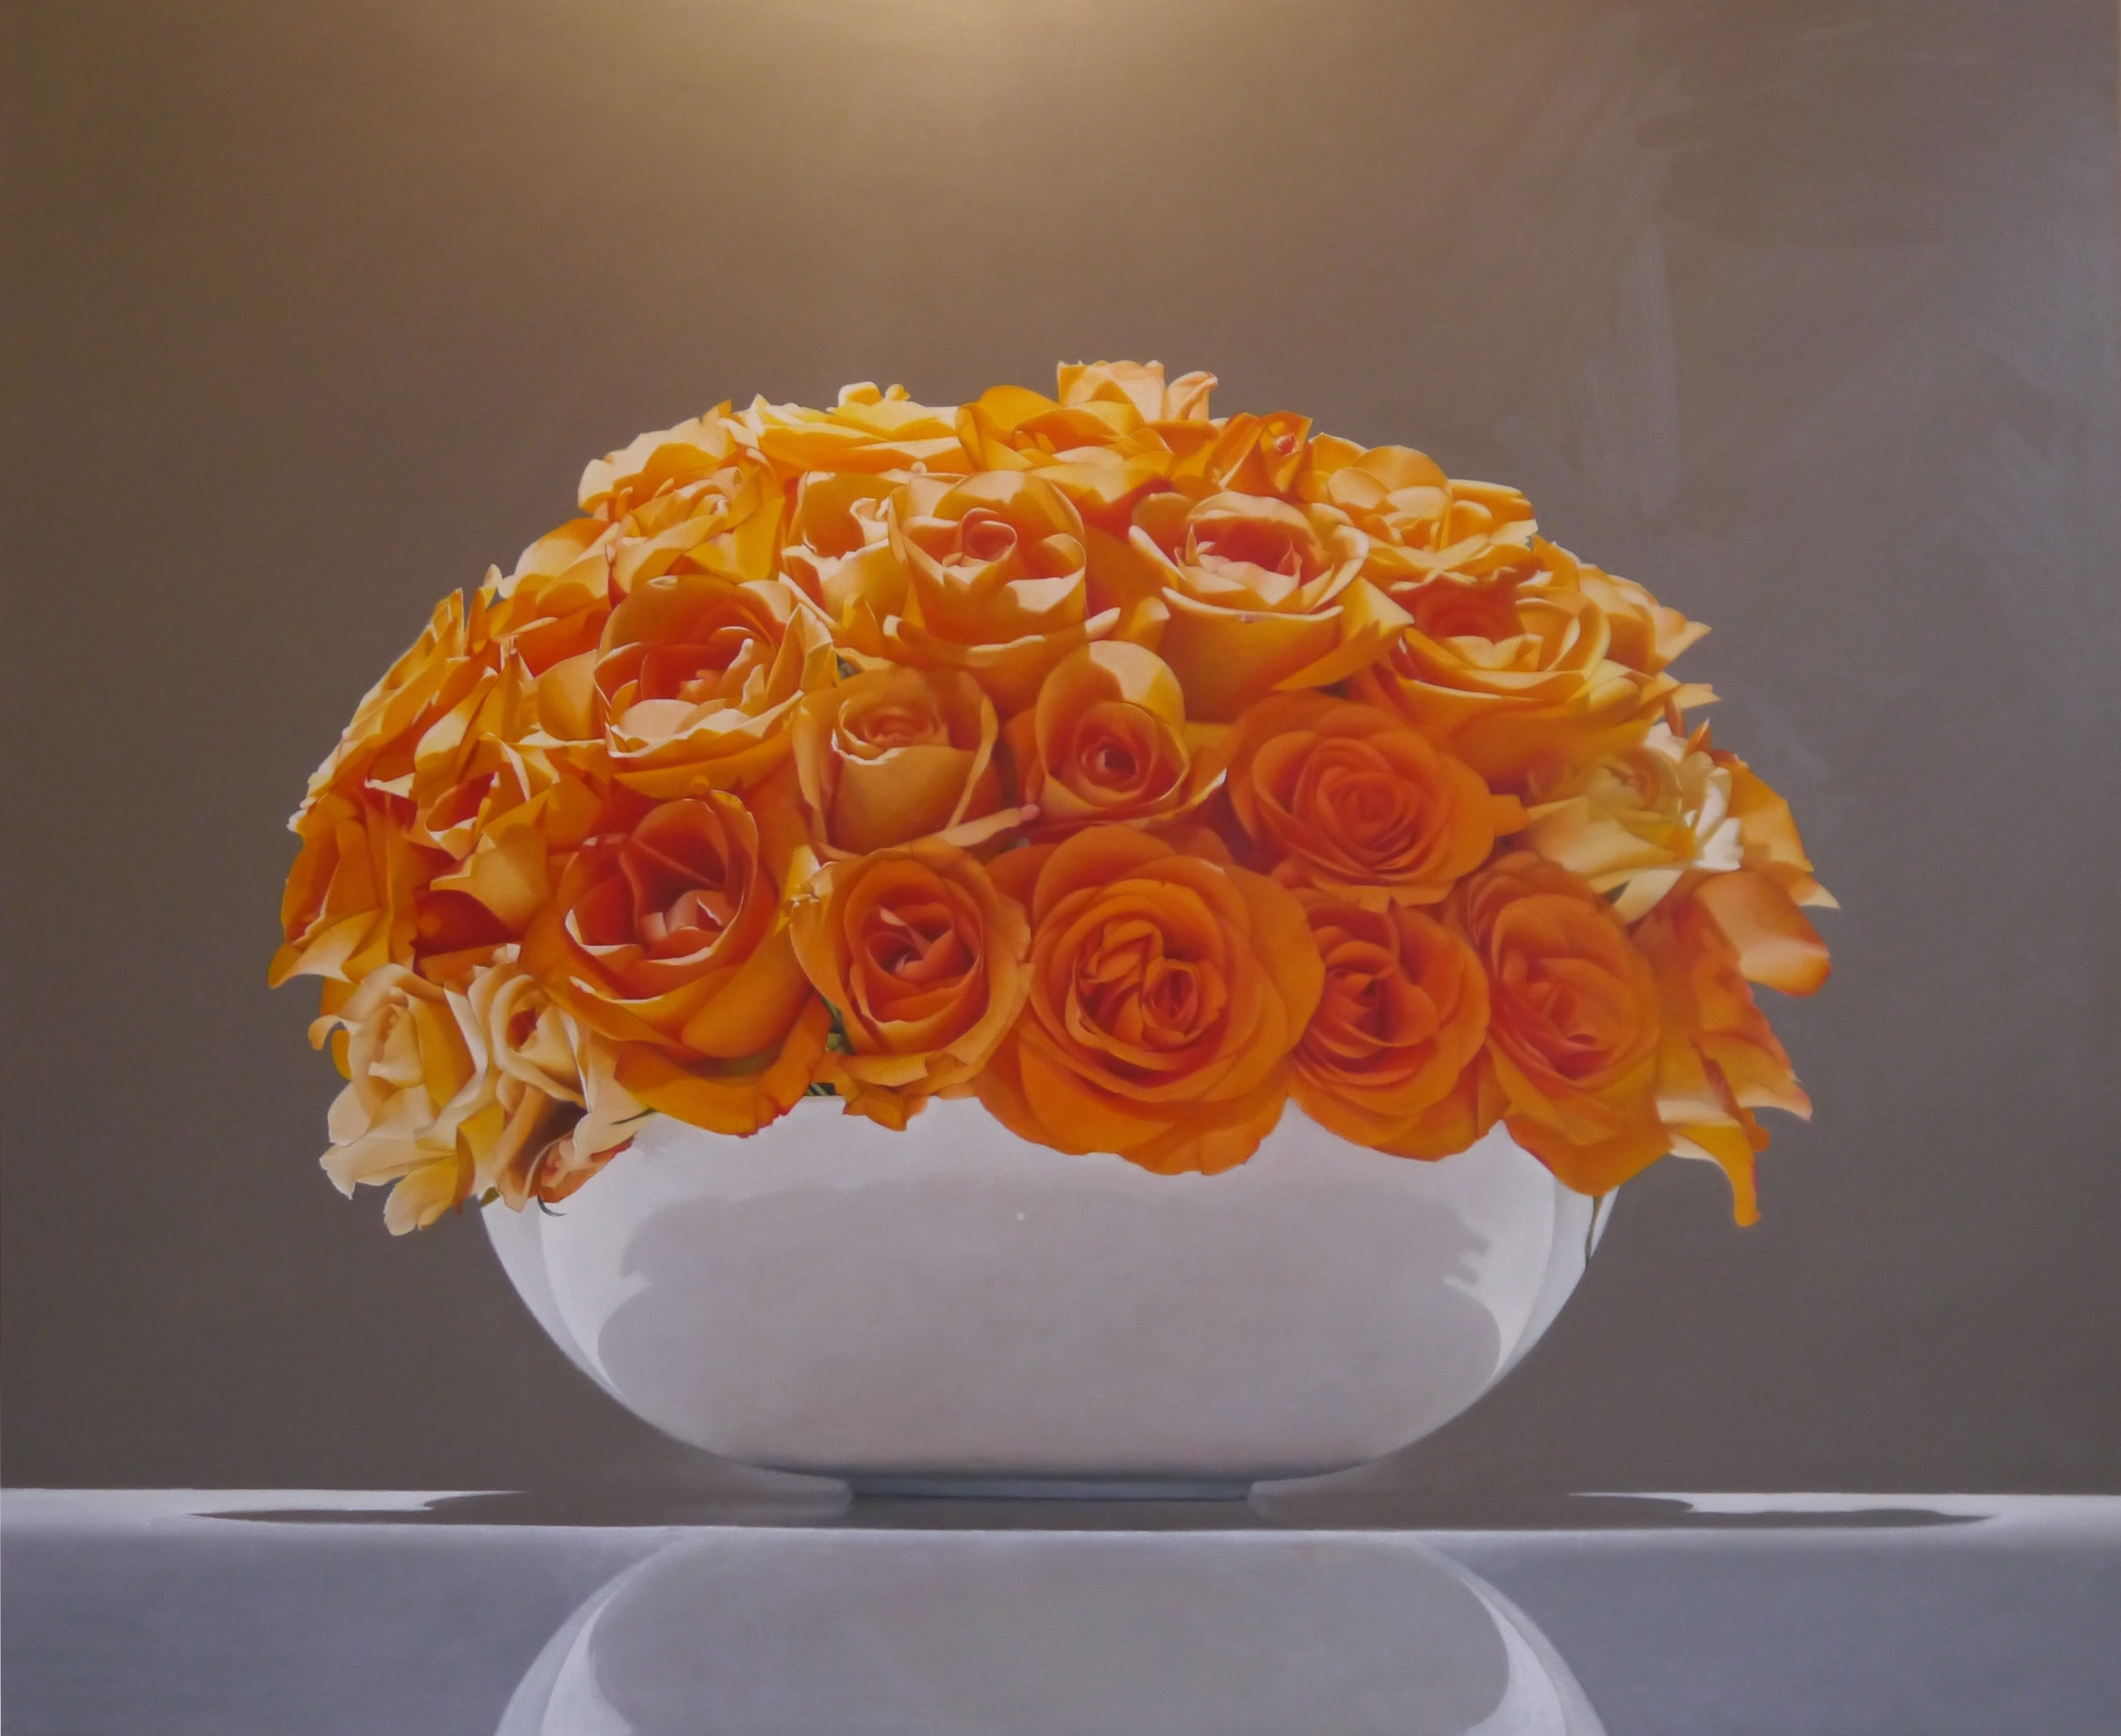 Spring picks at plus one gallery her new work flowers without vase gives the traditional still life a fresh contemporary feel reviewsmspy